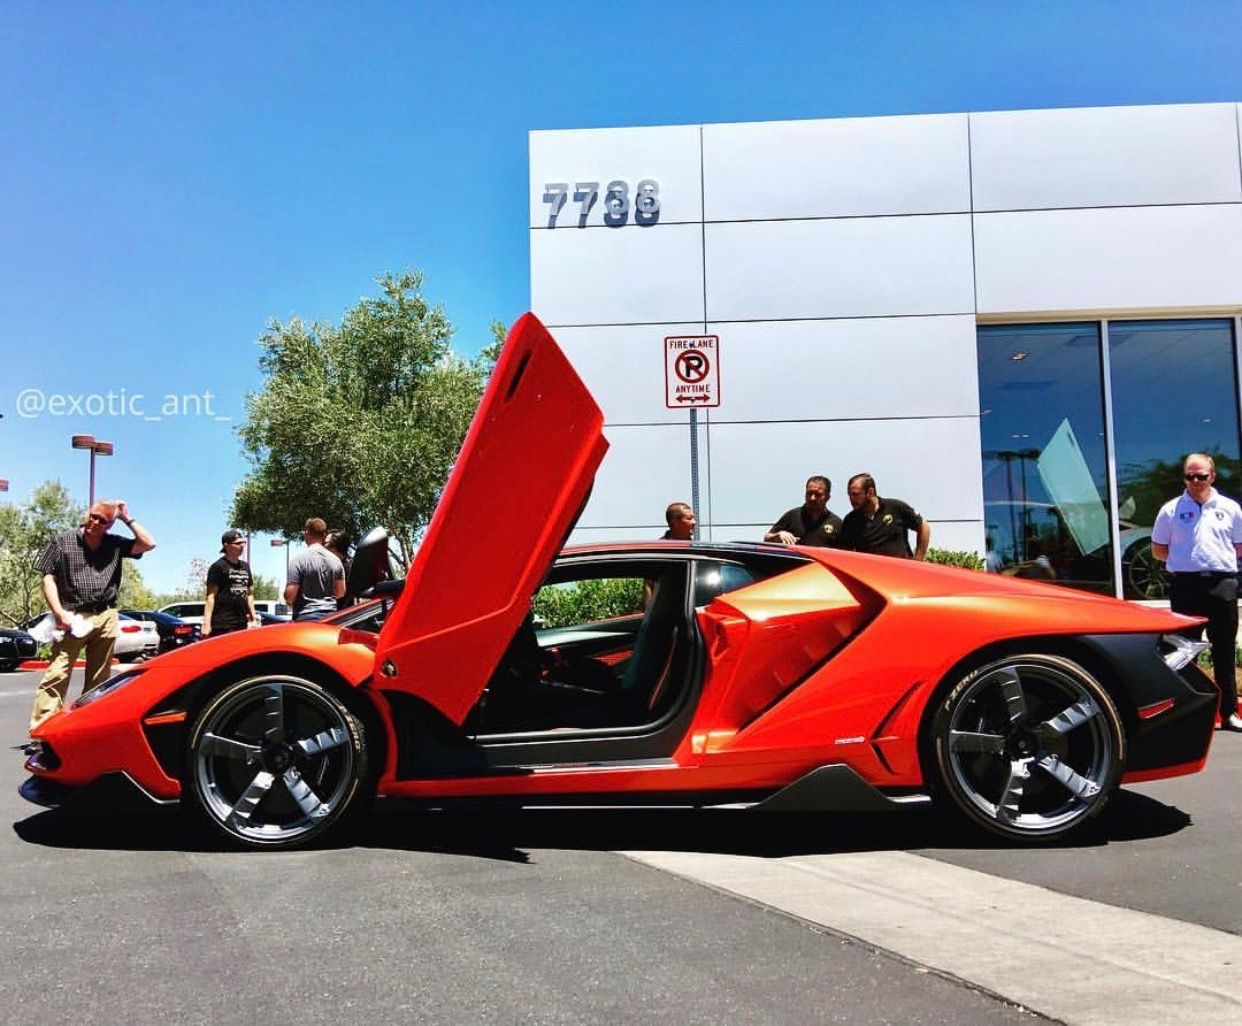 lamborghini centenario coupe painted in arancio fuoco photo taken